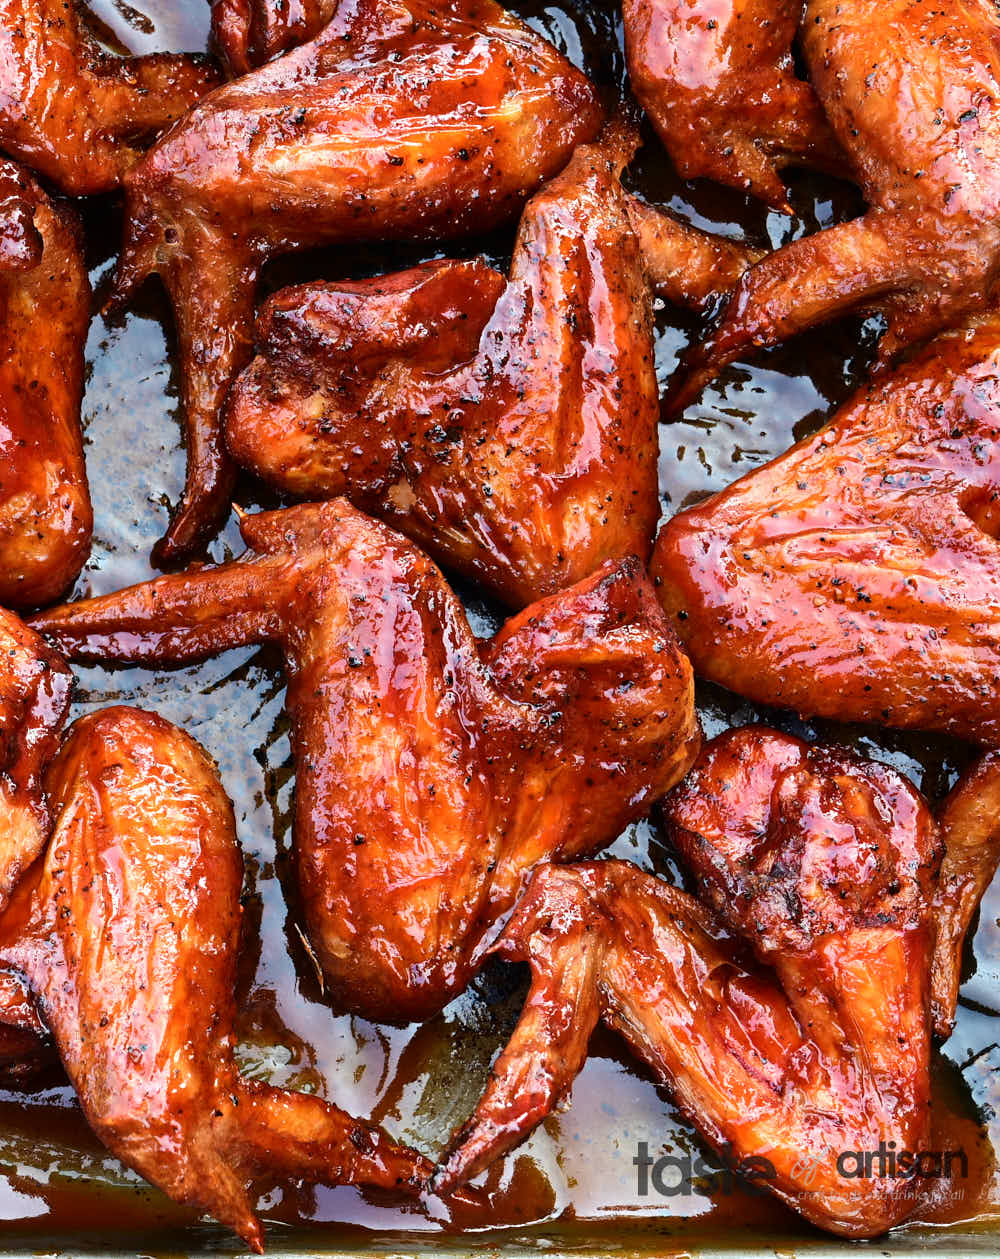 Extra crispy smoked chicken wings glazed with BBQ sauce.